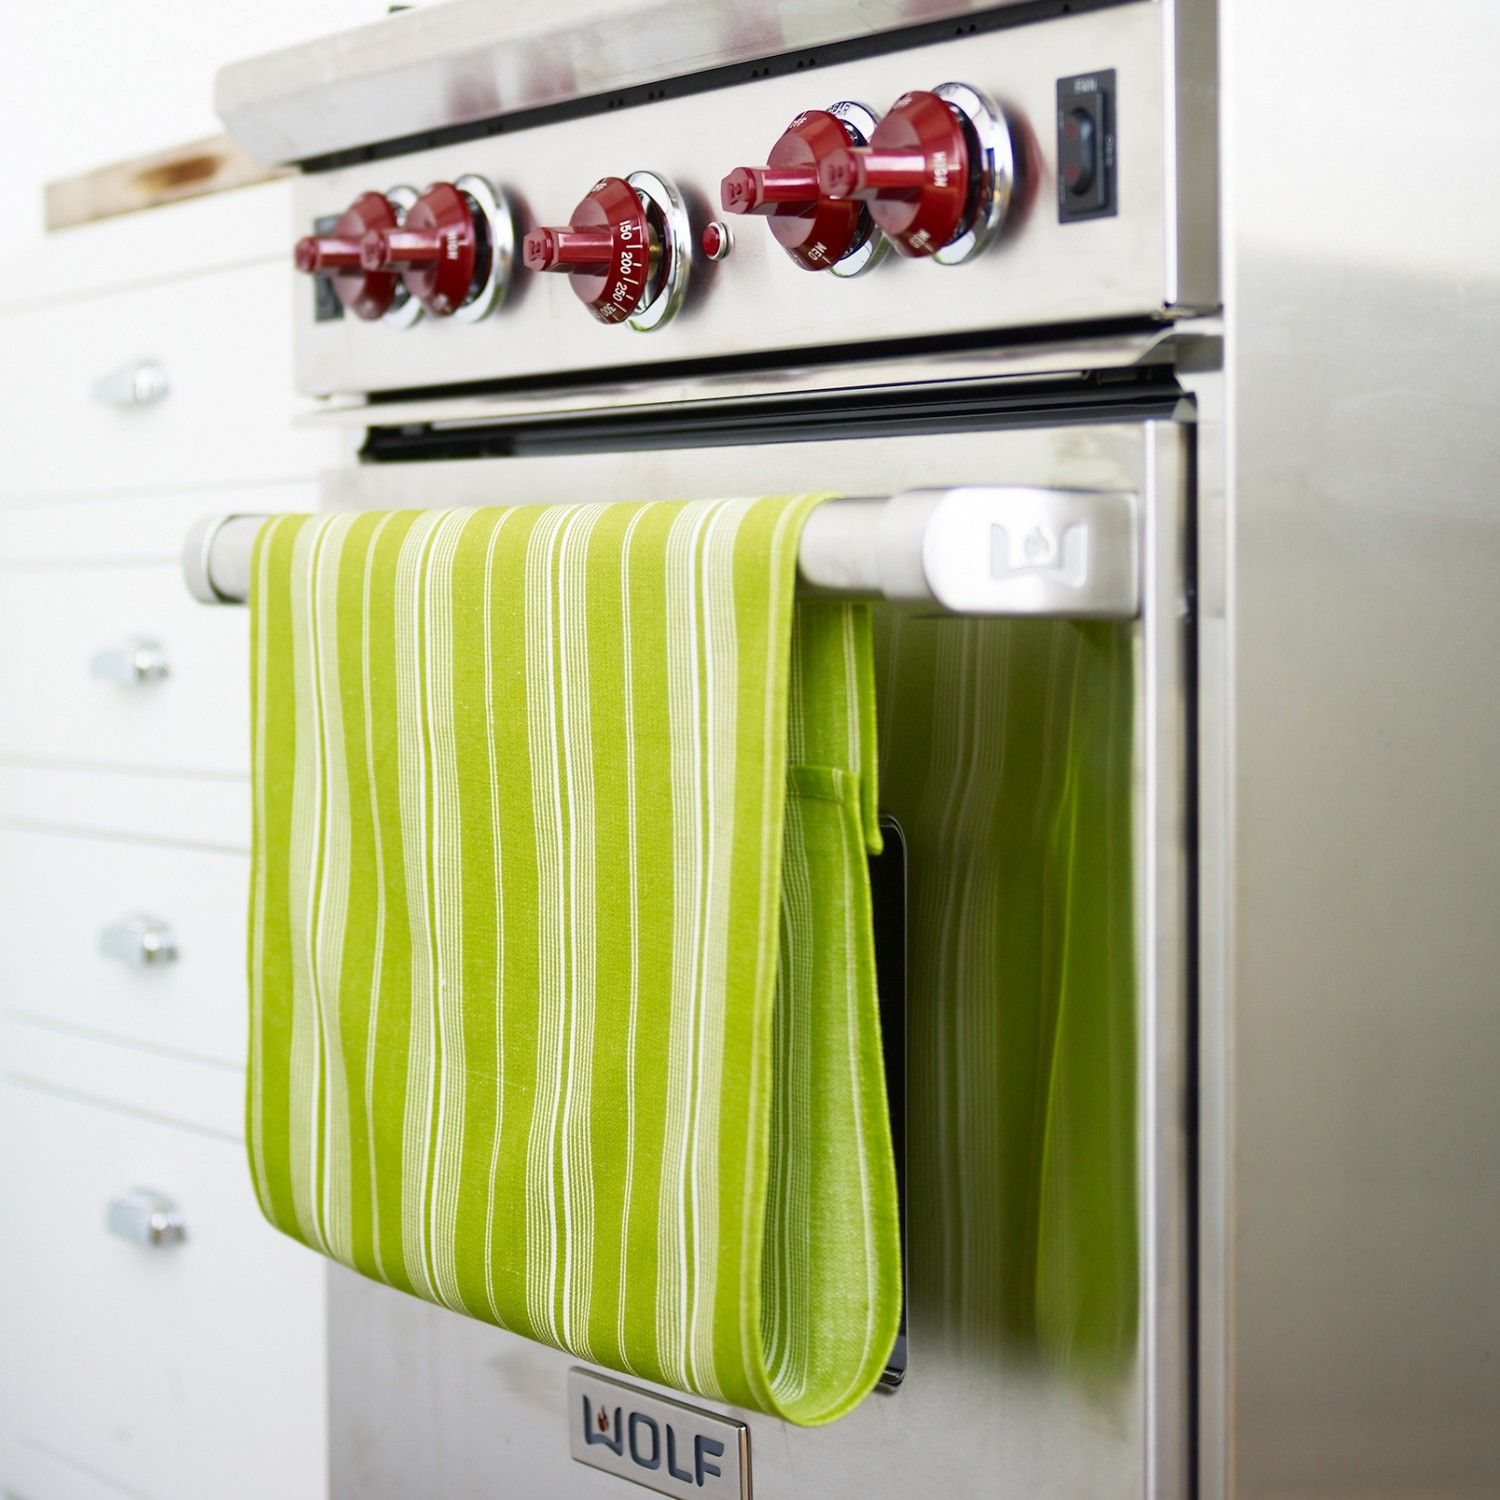 Hanging A Dish Towel From An Oven Door Makes Sense    The Towel Is Always